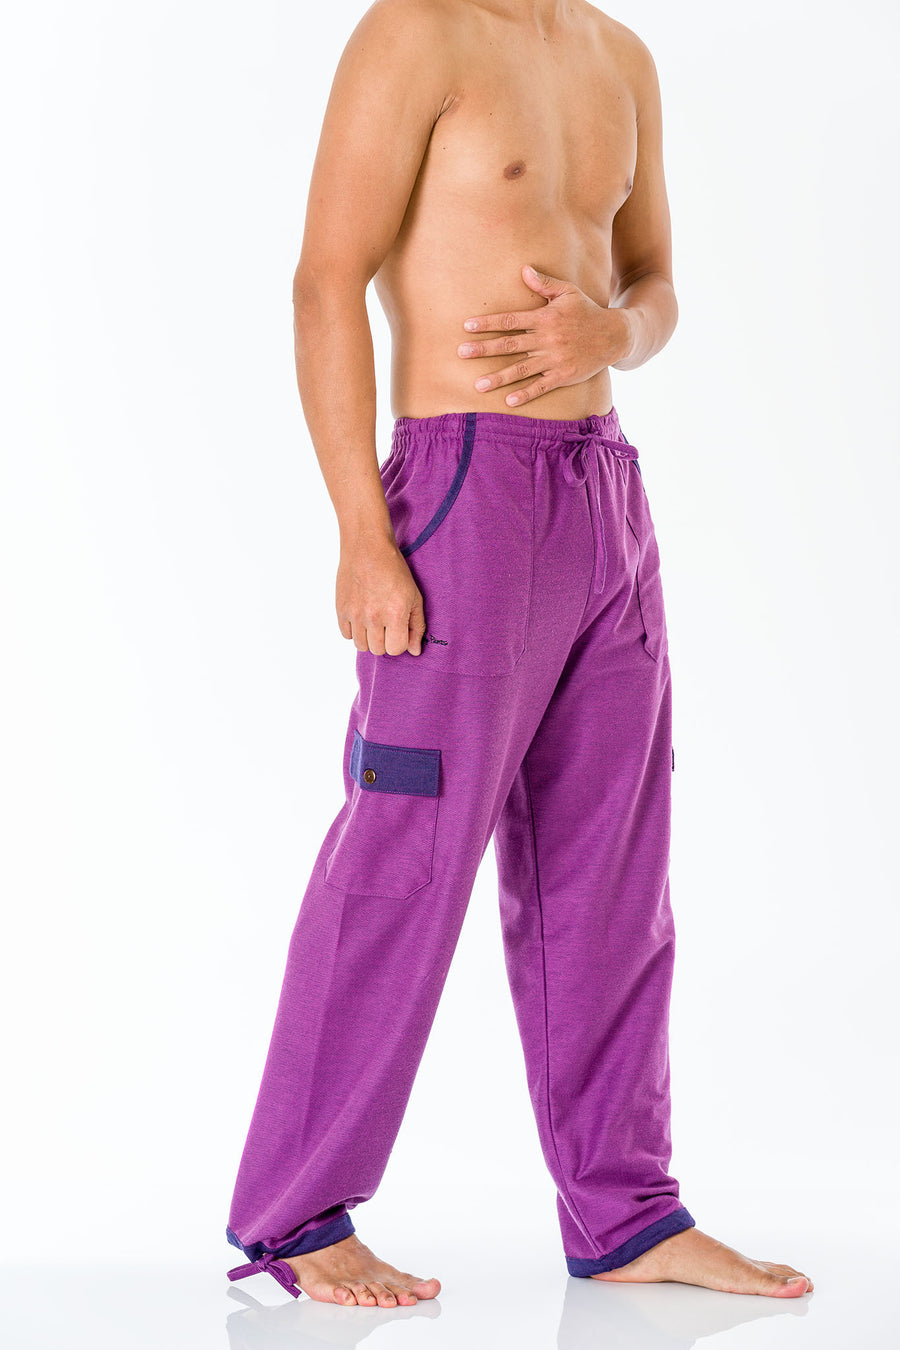 Amethyst Purple Pants